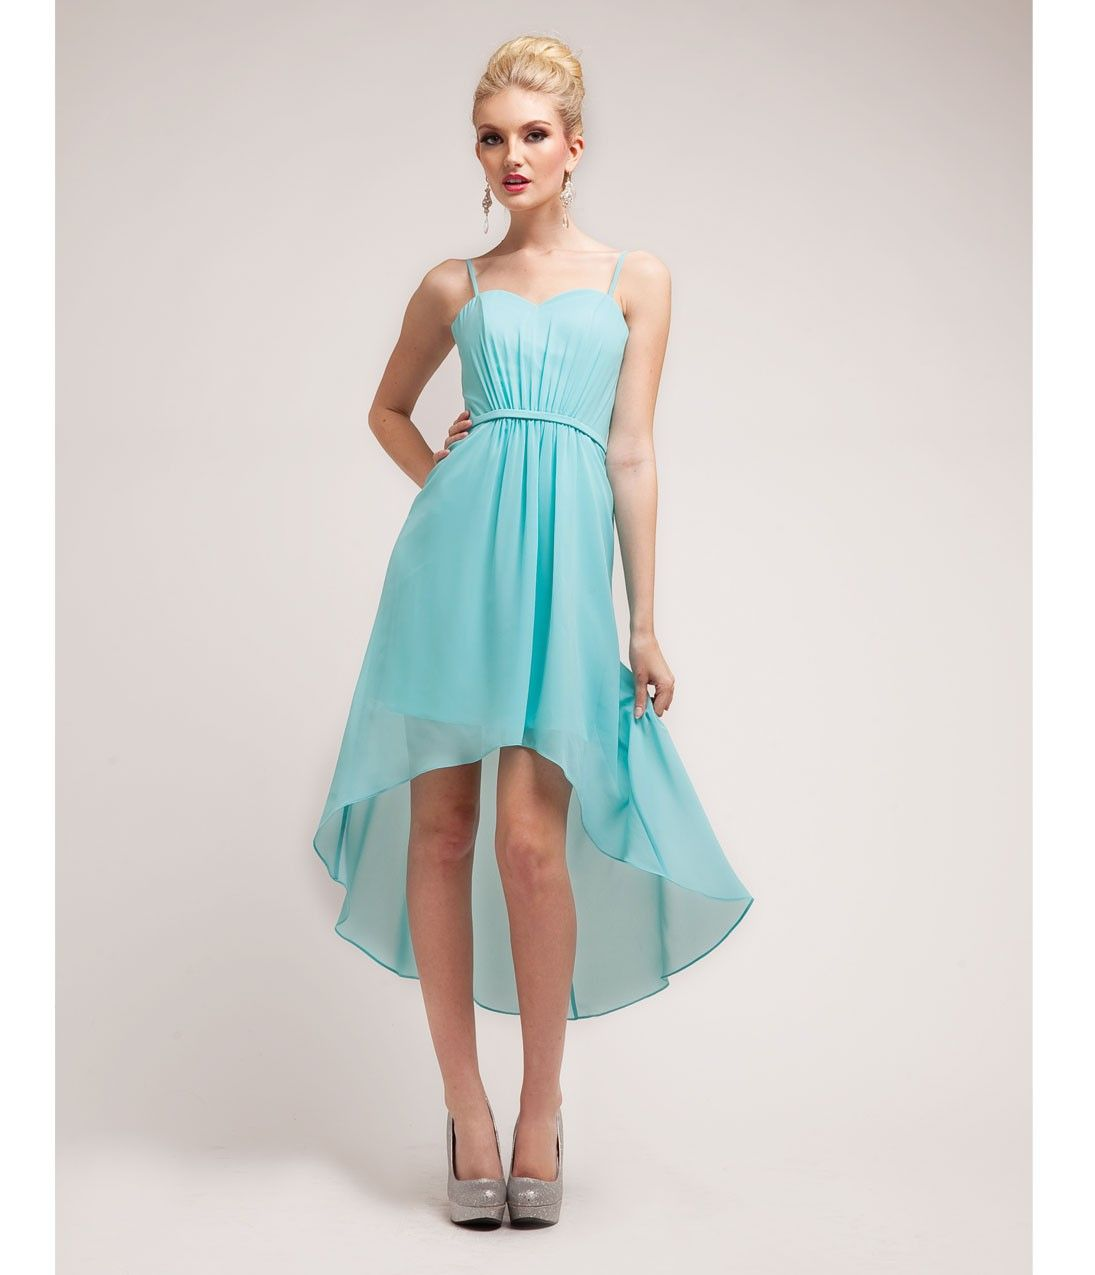 turquoise high low dress casual - Google Search | Graduation outfit ...